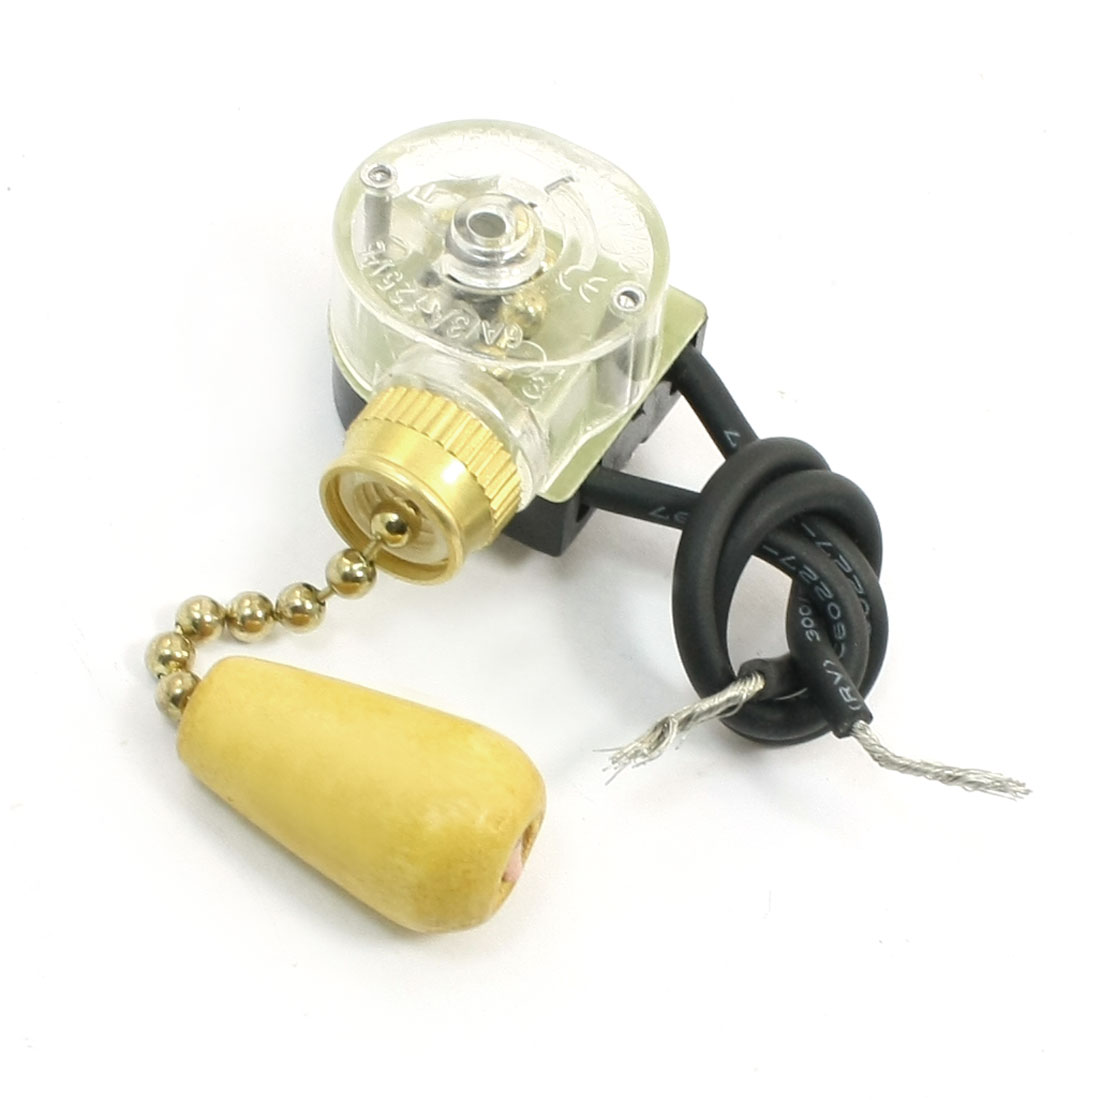 hight resolution of unique bargains 3a 250vac latching action ceiling fan two wires light pull chain switch